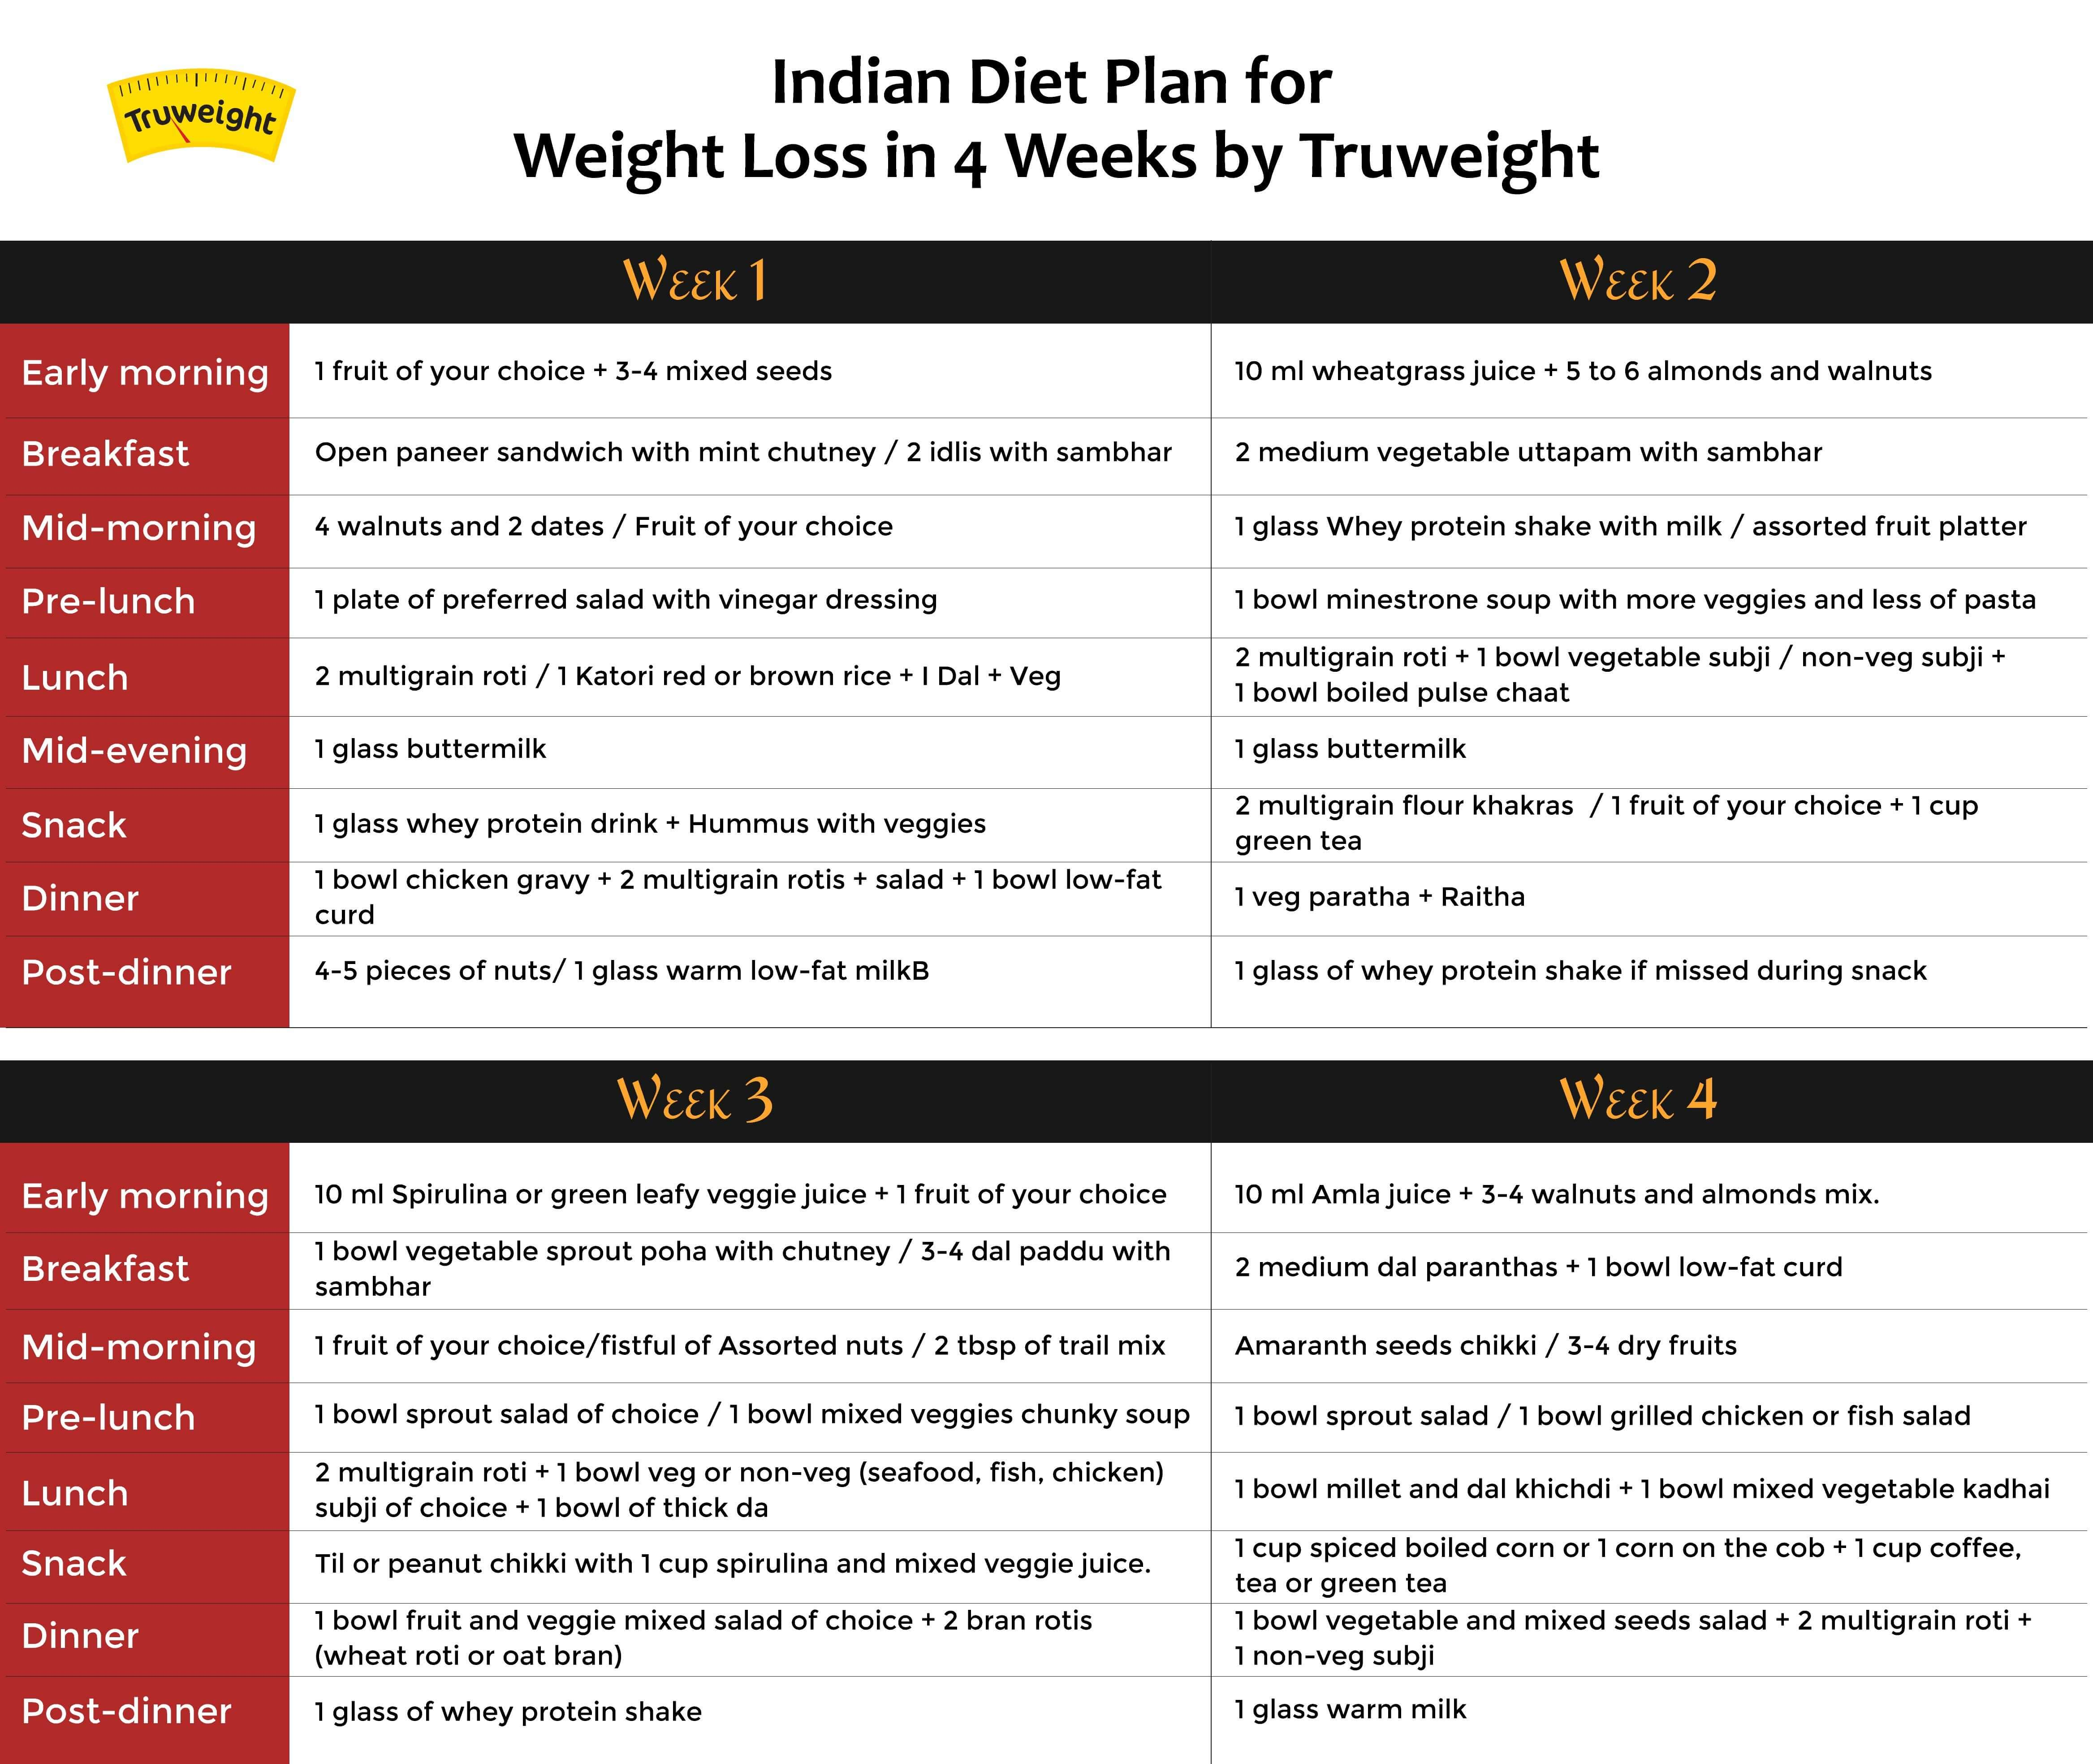 Indian Diet Plan plan for weight losss in 4 weeks by Truweight